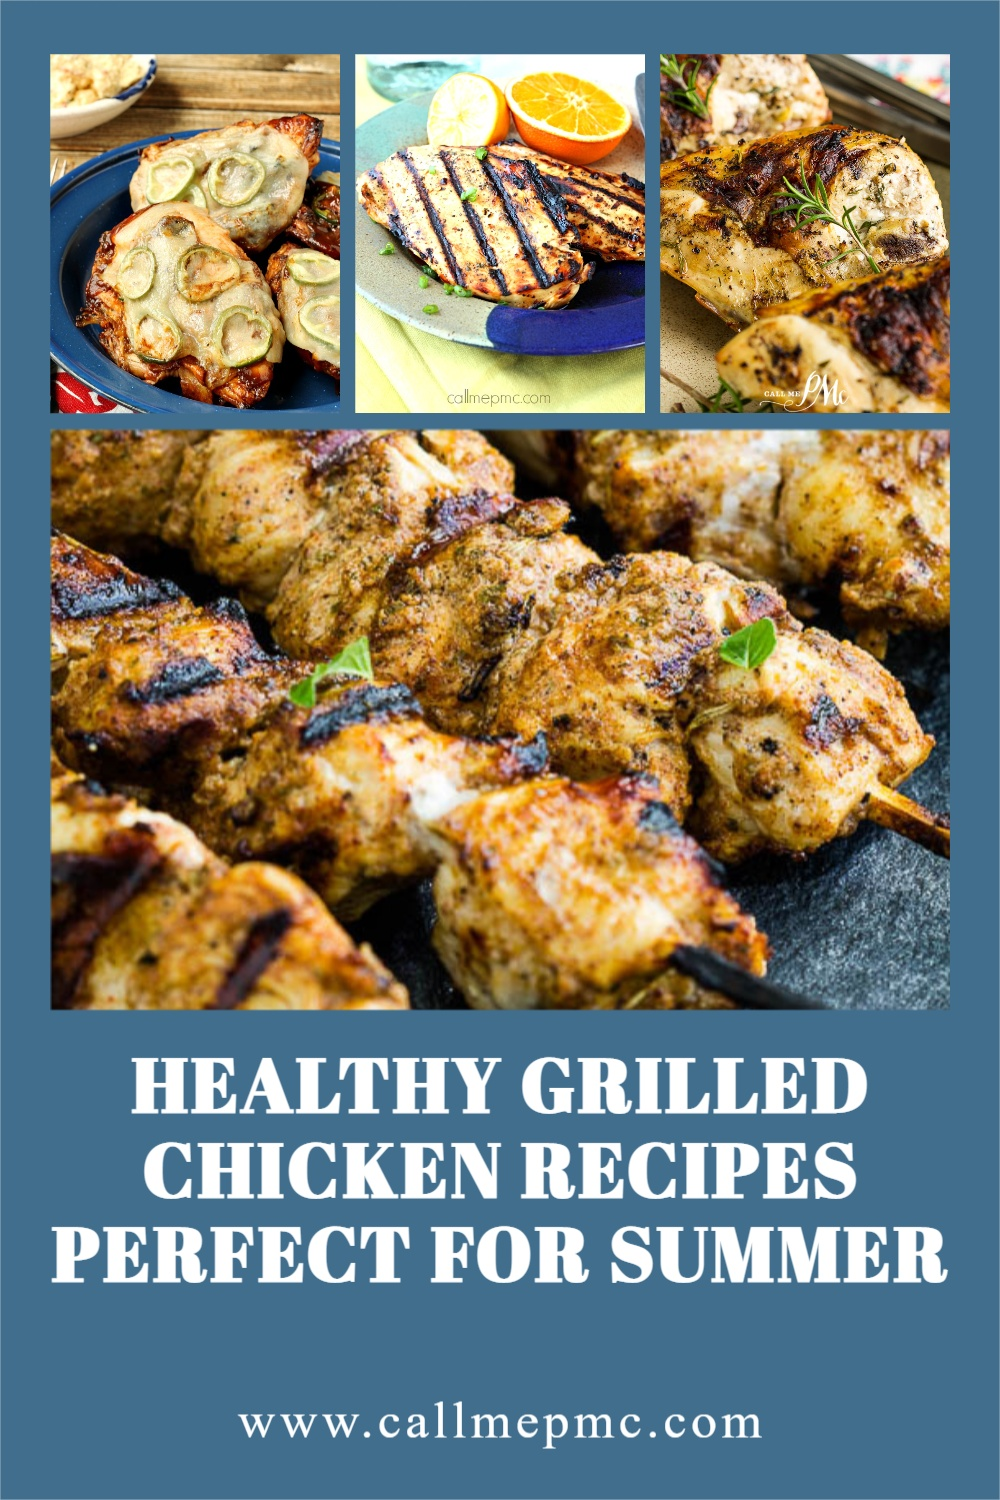 Healthy Grilled Chicken Recipes Perfect for Summer, these simple chicken recipes will make a hearty & delicious meal that everyone will love. #chickenrecipes #recipes #callmepmc